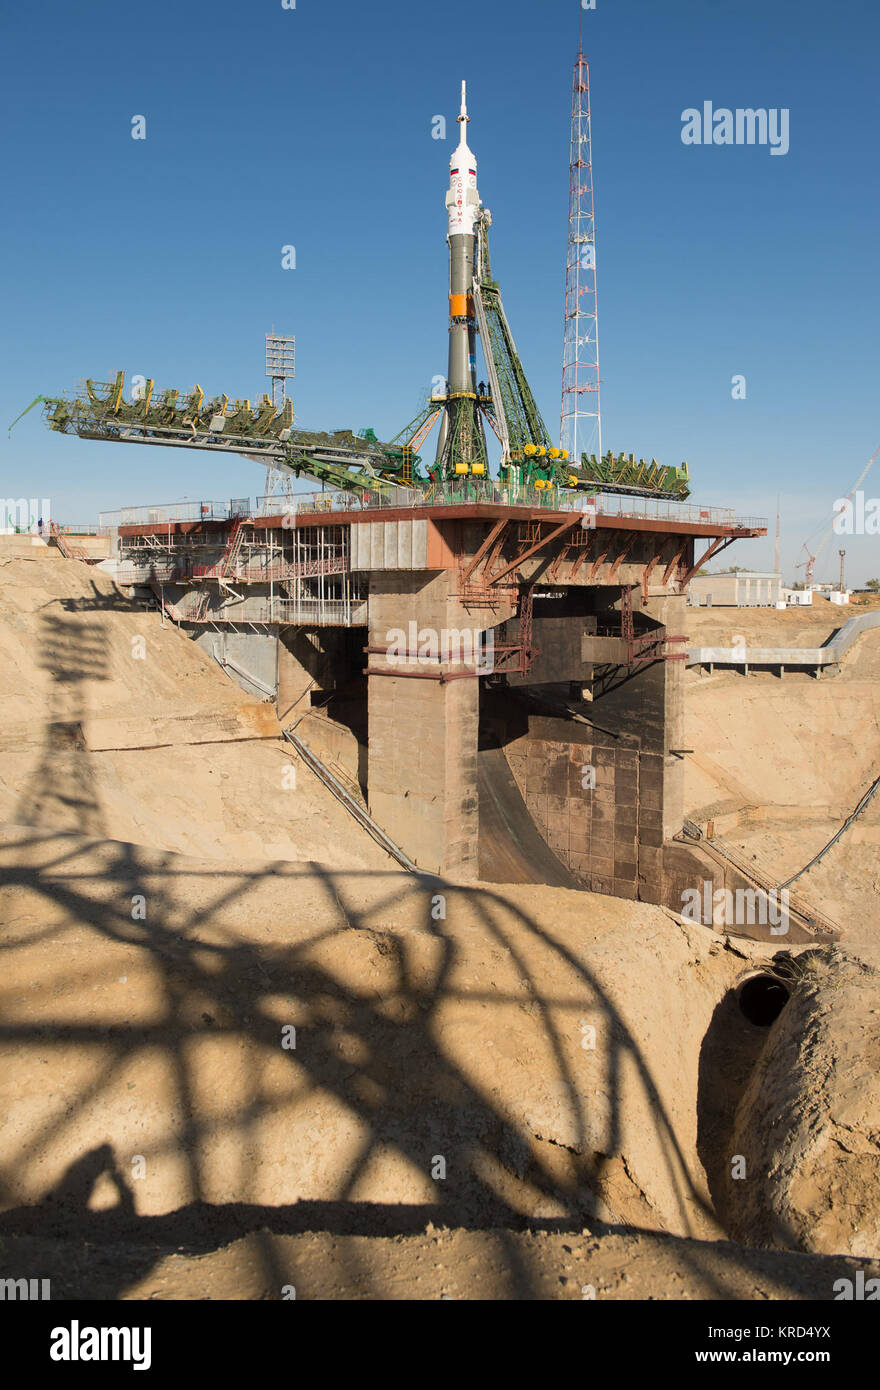 The Soyuz rocket is seen on its launch pad shortly after being lifted into its upright position on Monday, Sept. - Stock Image